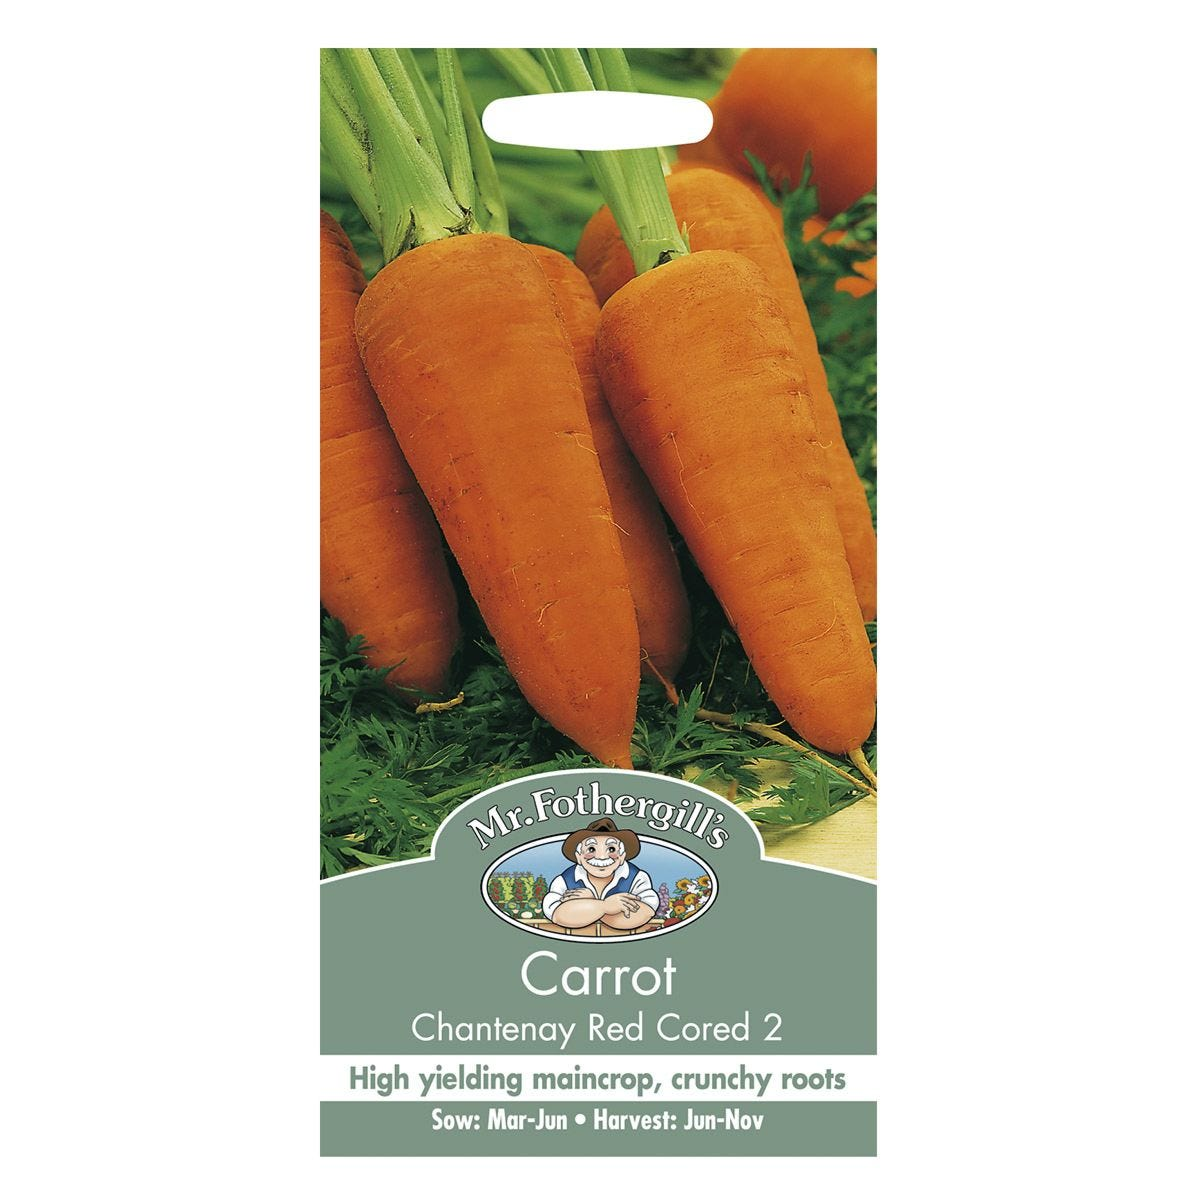 Mr Fothergill's Carrot Chantenay Red Cored 2 Seeds